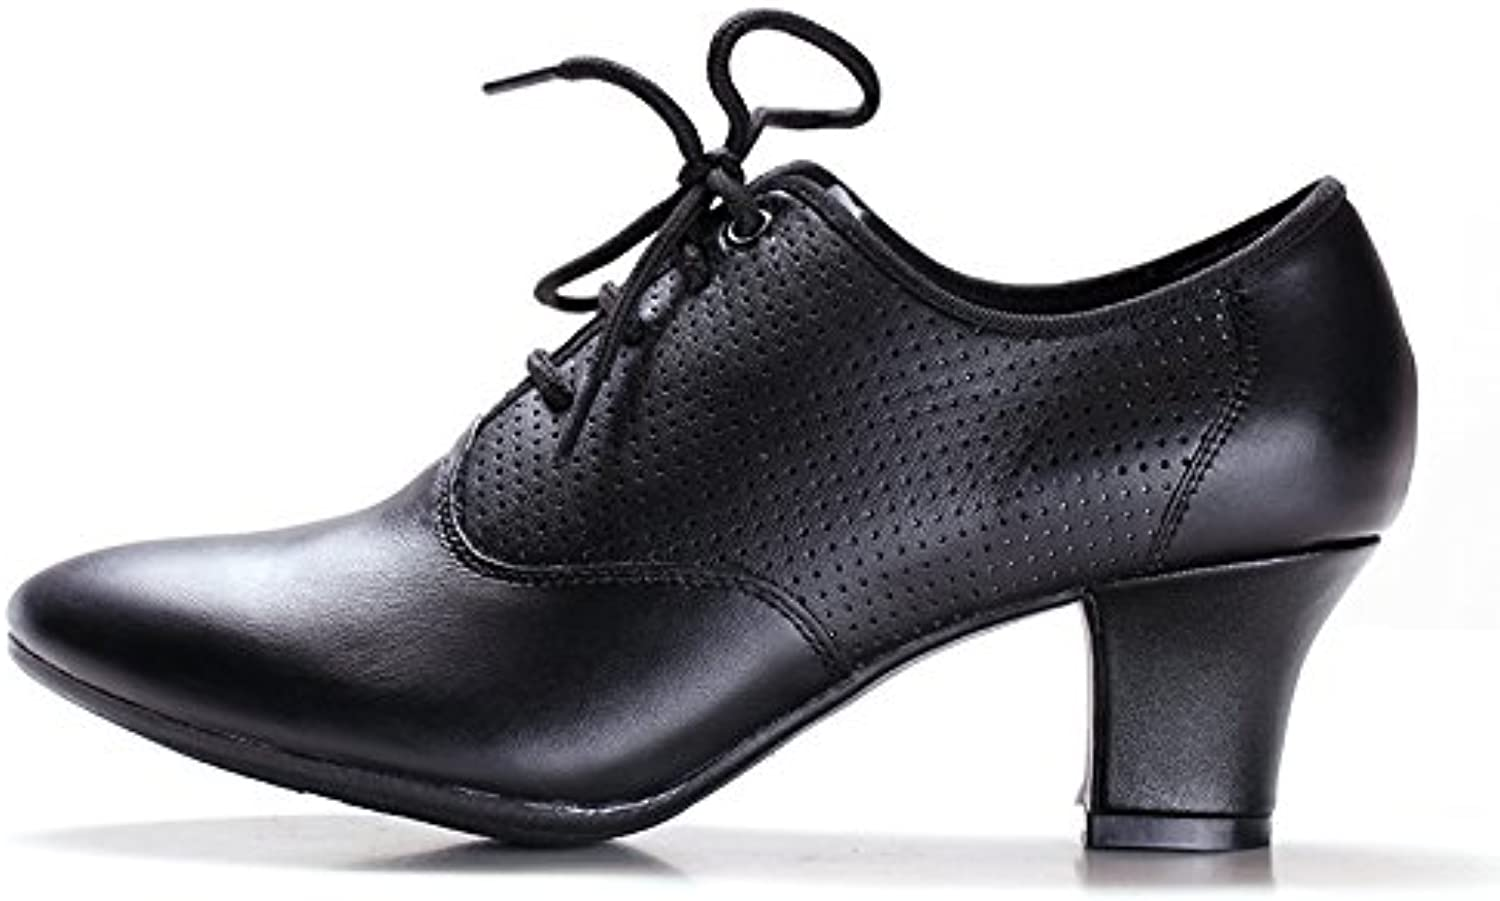 Ruiyue Ballroom Latin Dance shoes, Genuine Leather Lace-up Teachers Professional Dancing shoes Square Heel for Women